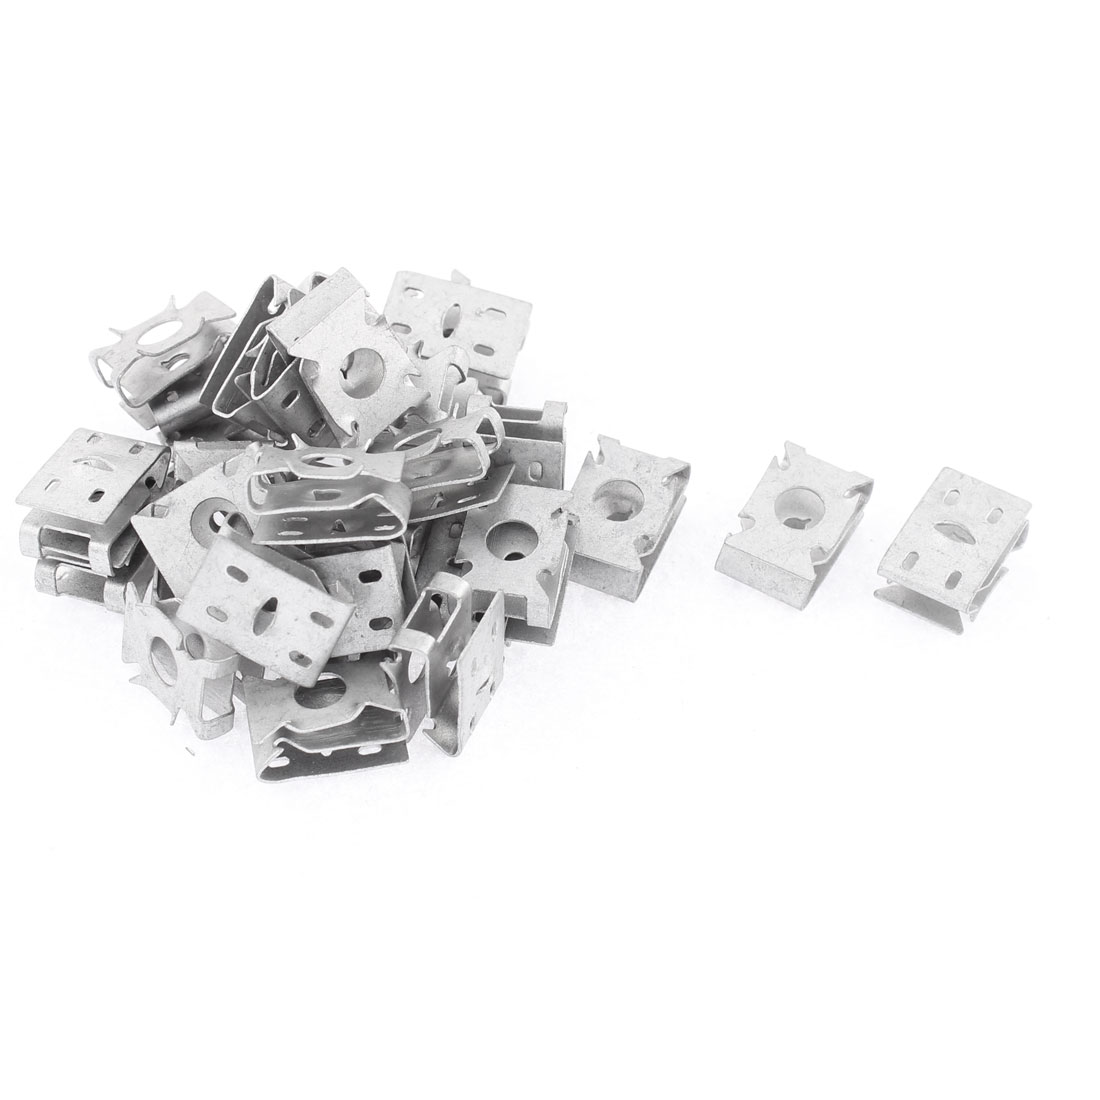 30Pcs Silver Tone Metal Retainer Clips for Car Dash License Plate